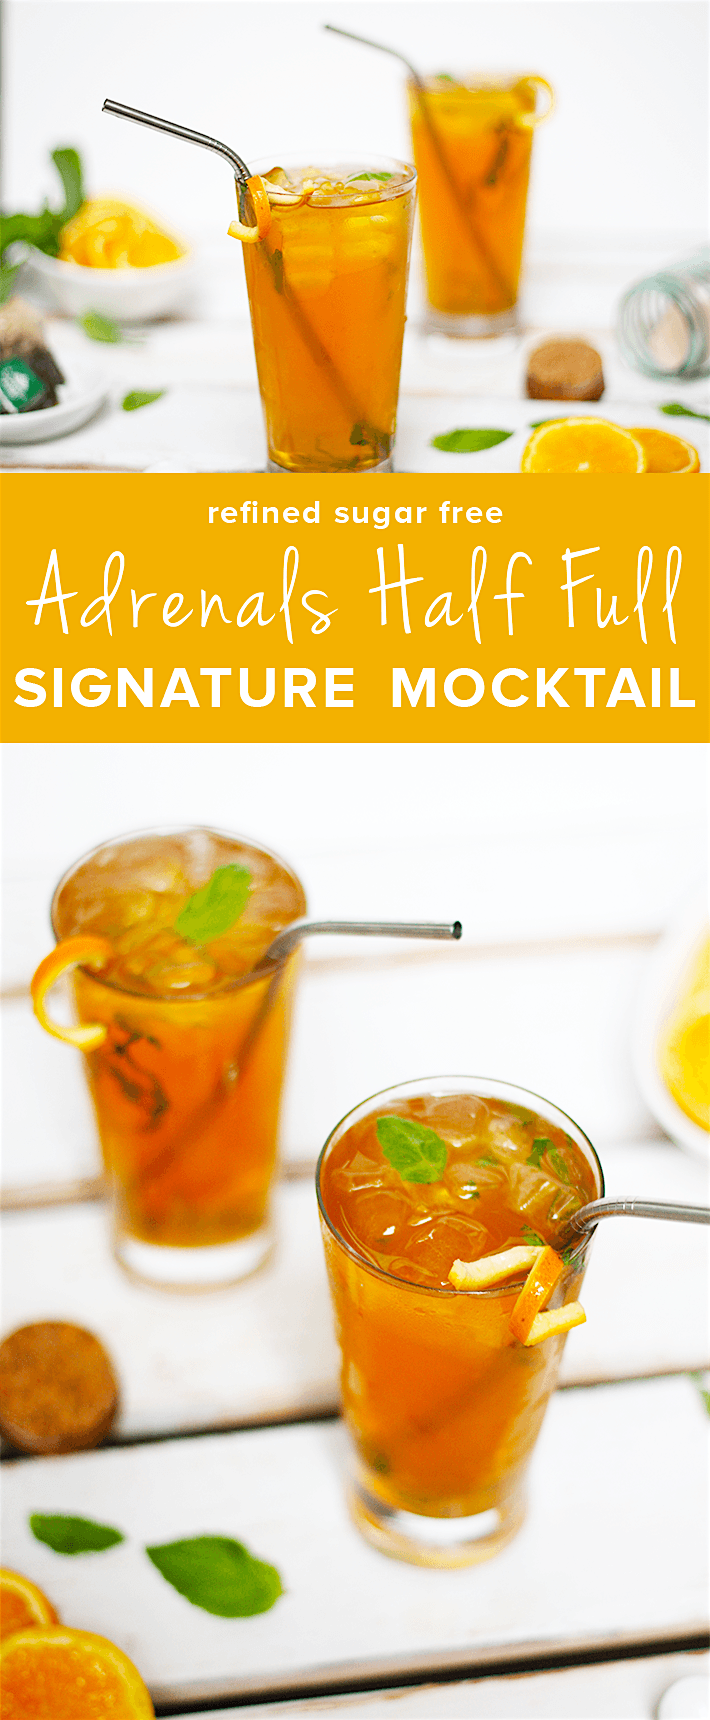 Adrenals Half Full Signature Mocktail is the perfect drink to add to your daily routine as a way to support your adrenal glands. @grassfedsalsa